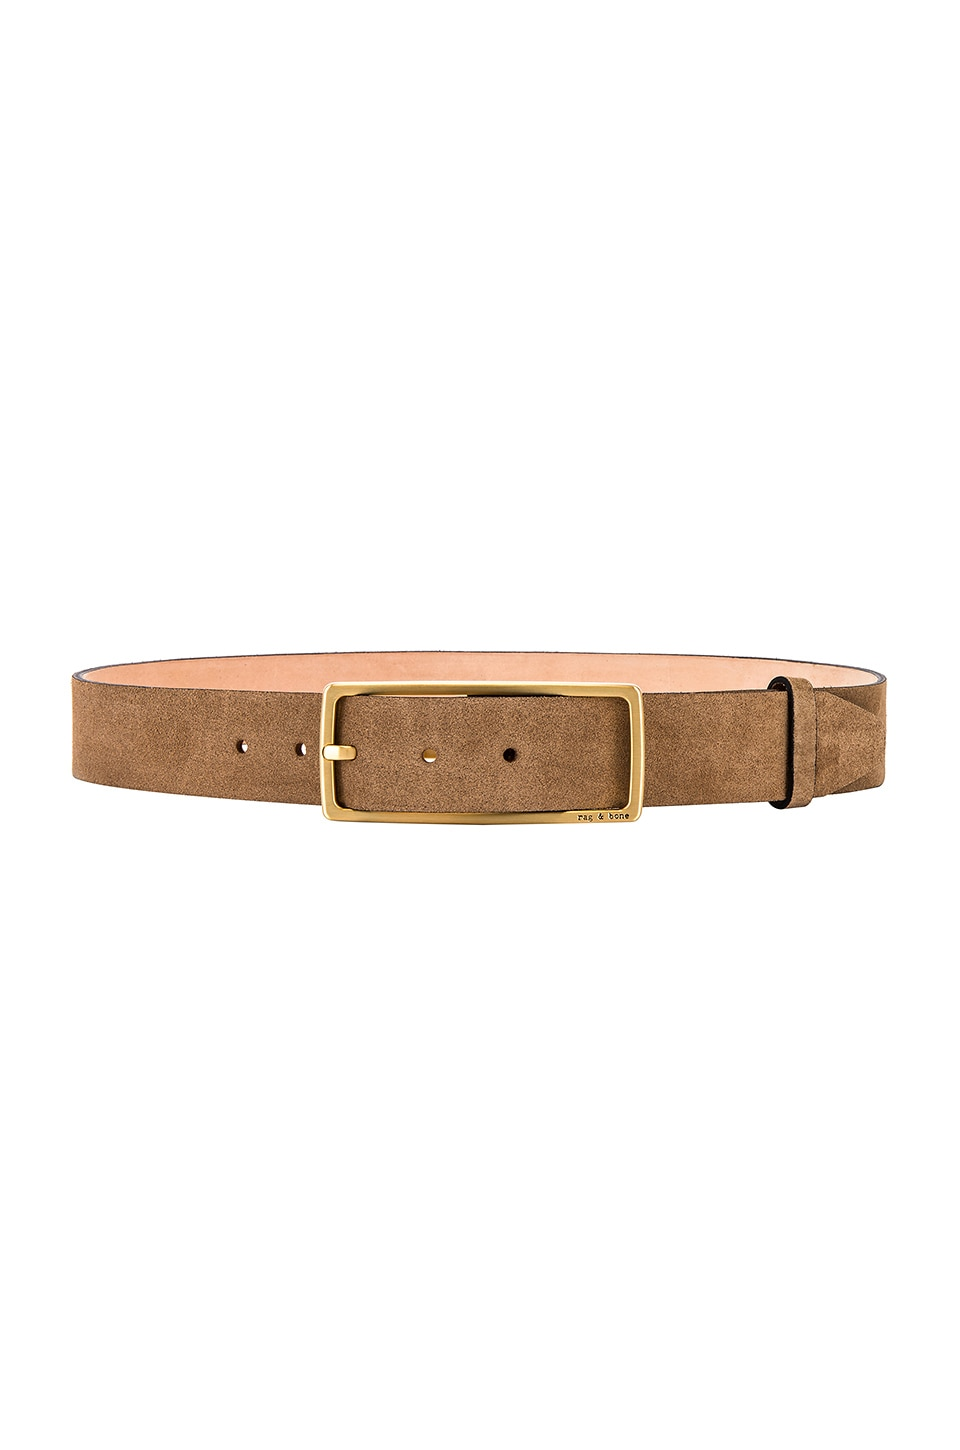 Rag & Bone Rebound Belt in Camel